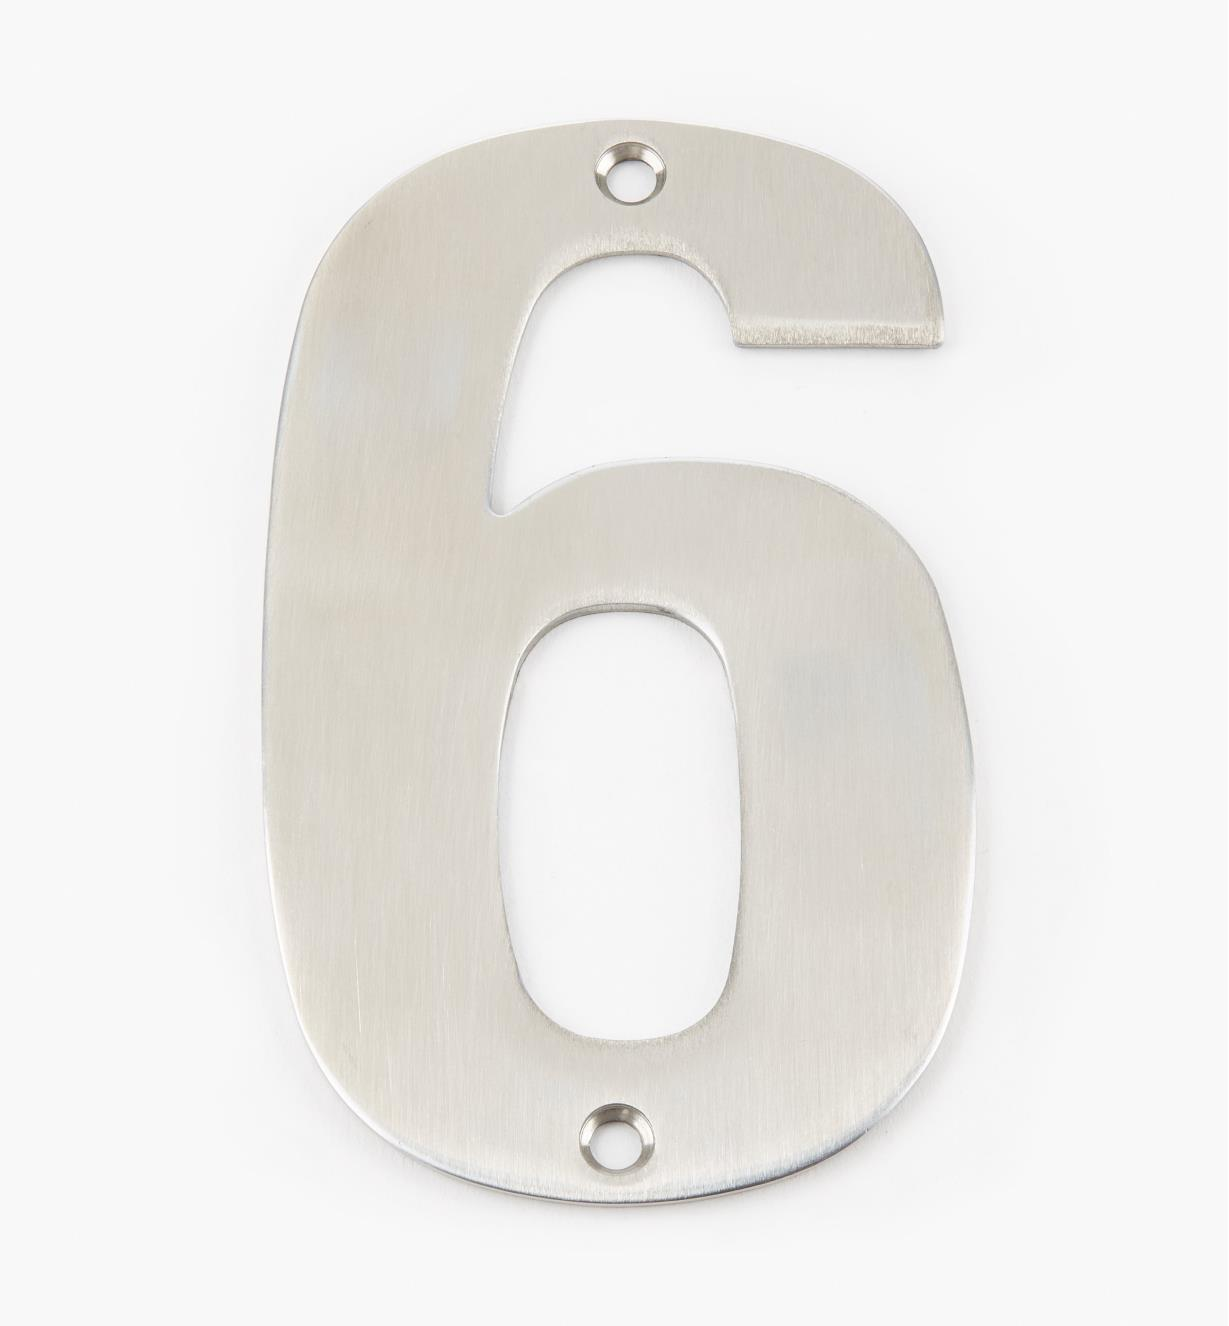 00W0896 - 130mm Stainless-Steel House Number - 6